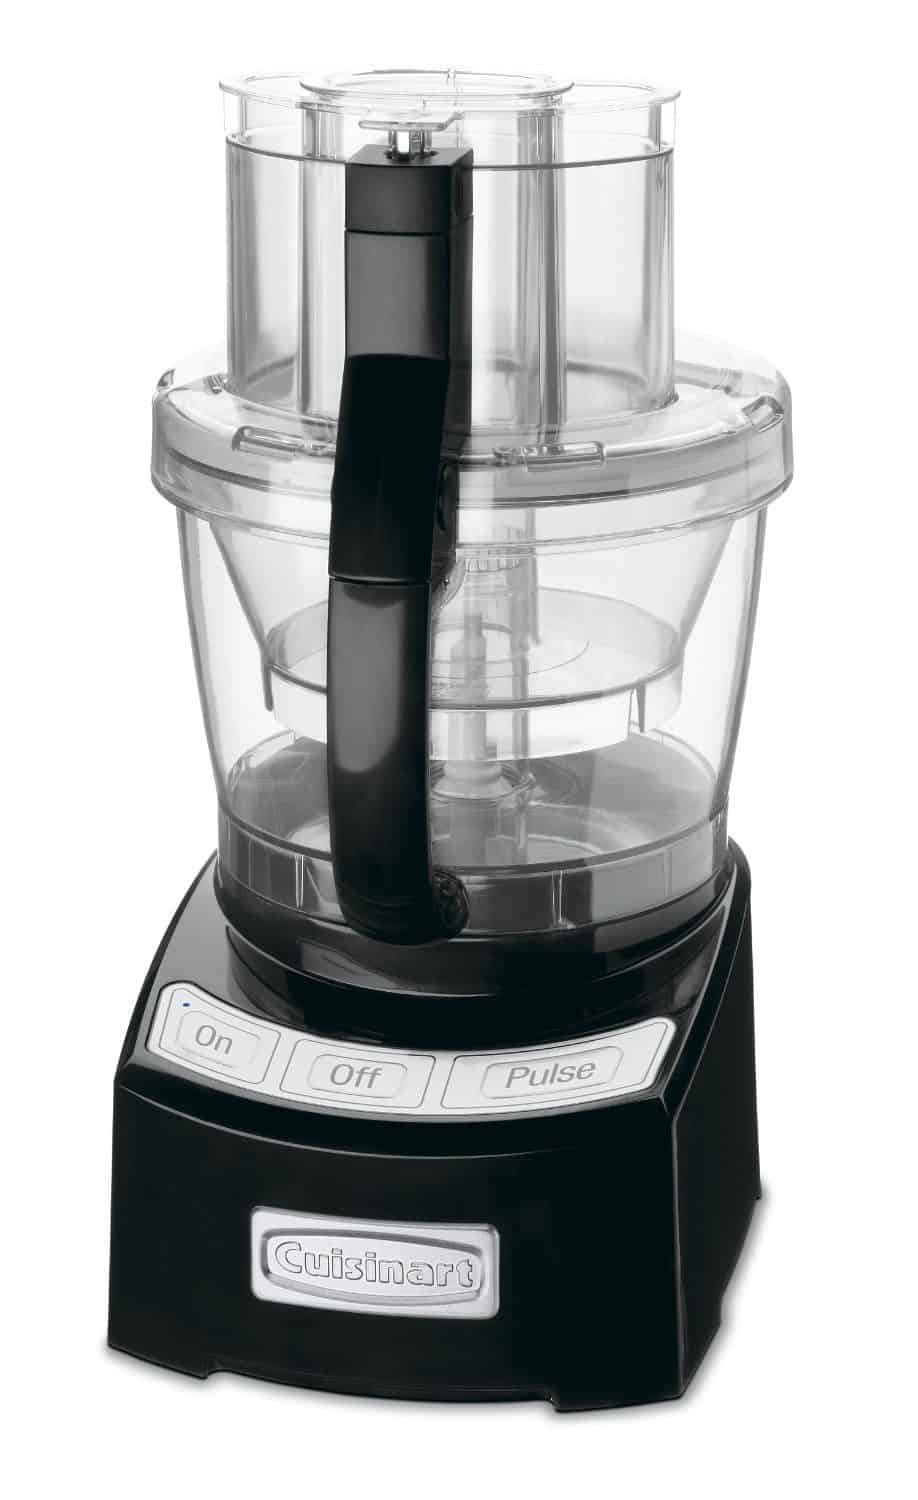 braun kitchen appliances dark gray cabinets elite cuisinart collection 12-cup food processor fp-12bk